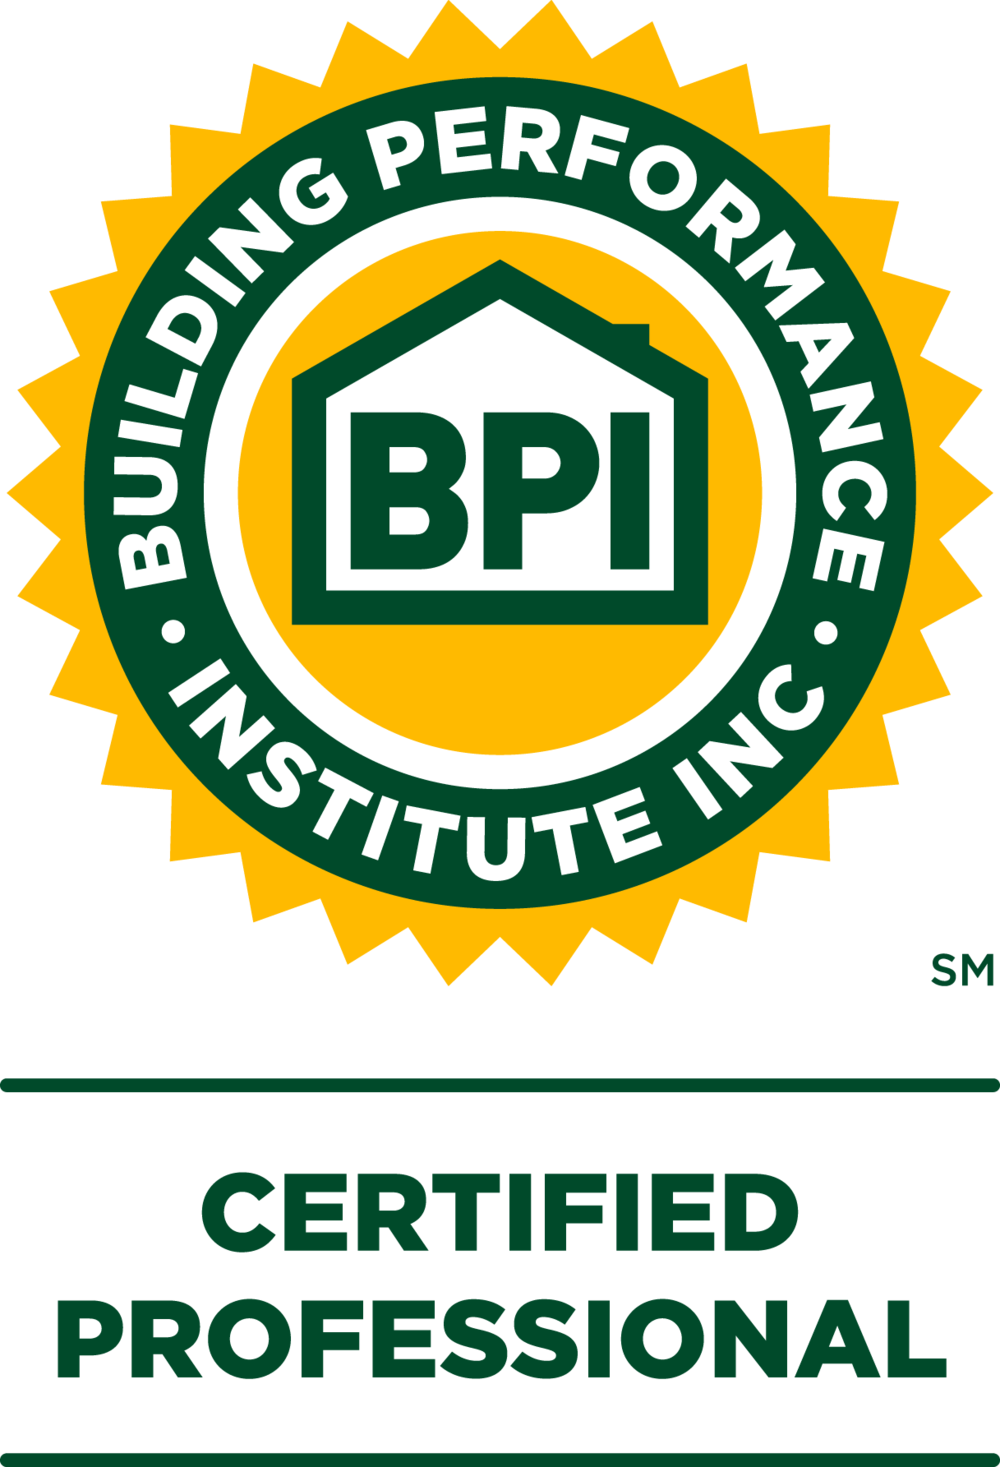 Certified+Professional.png